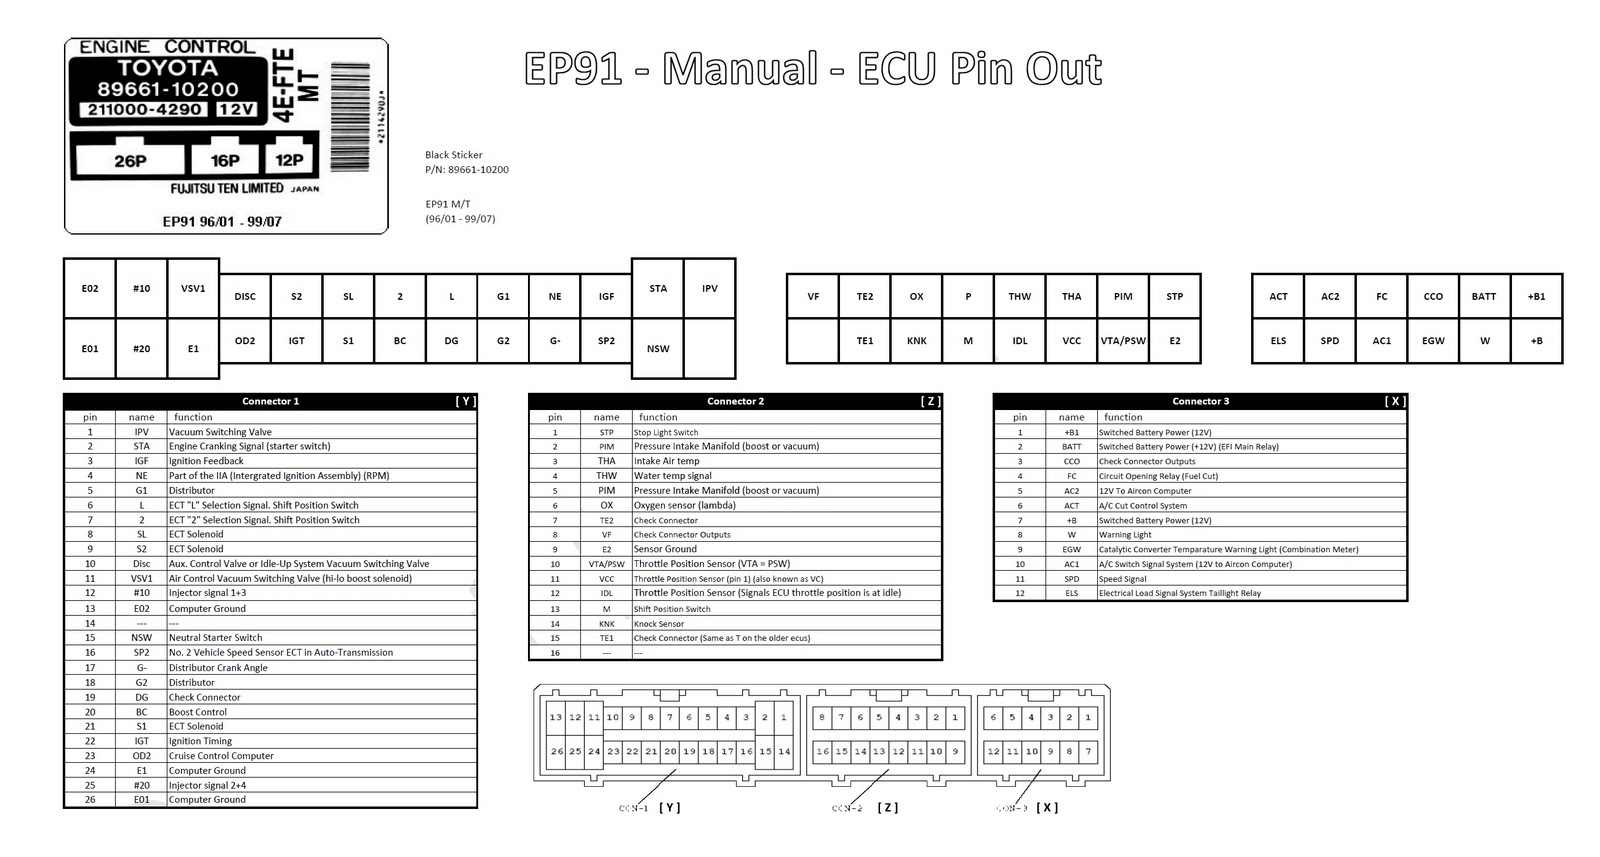 Toyota Ep91 Wiring G4 Link Engine Management 91 Mustang Fuse Diagram Ecu Pinoutc2a0